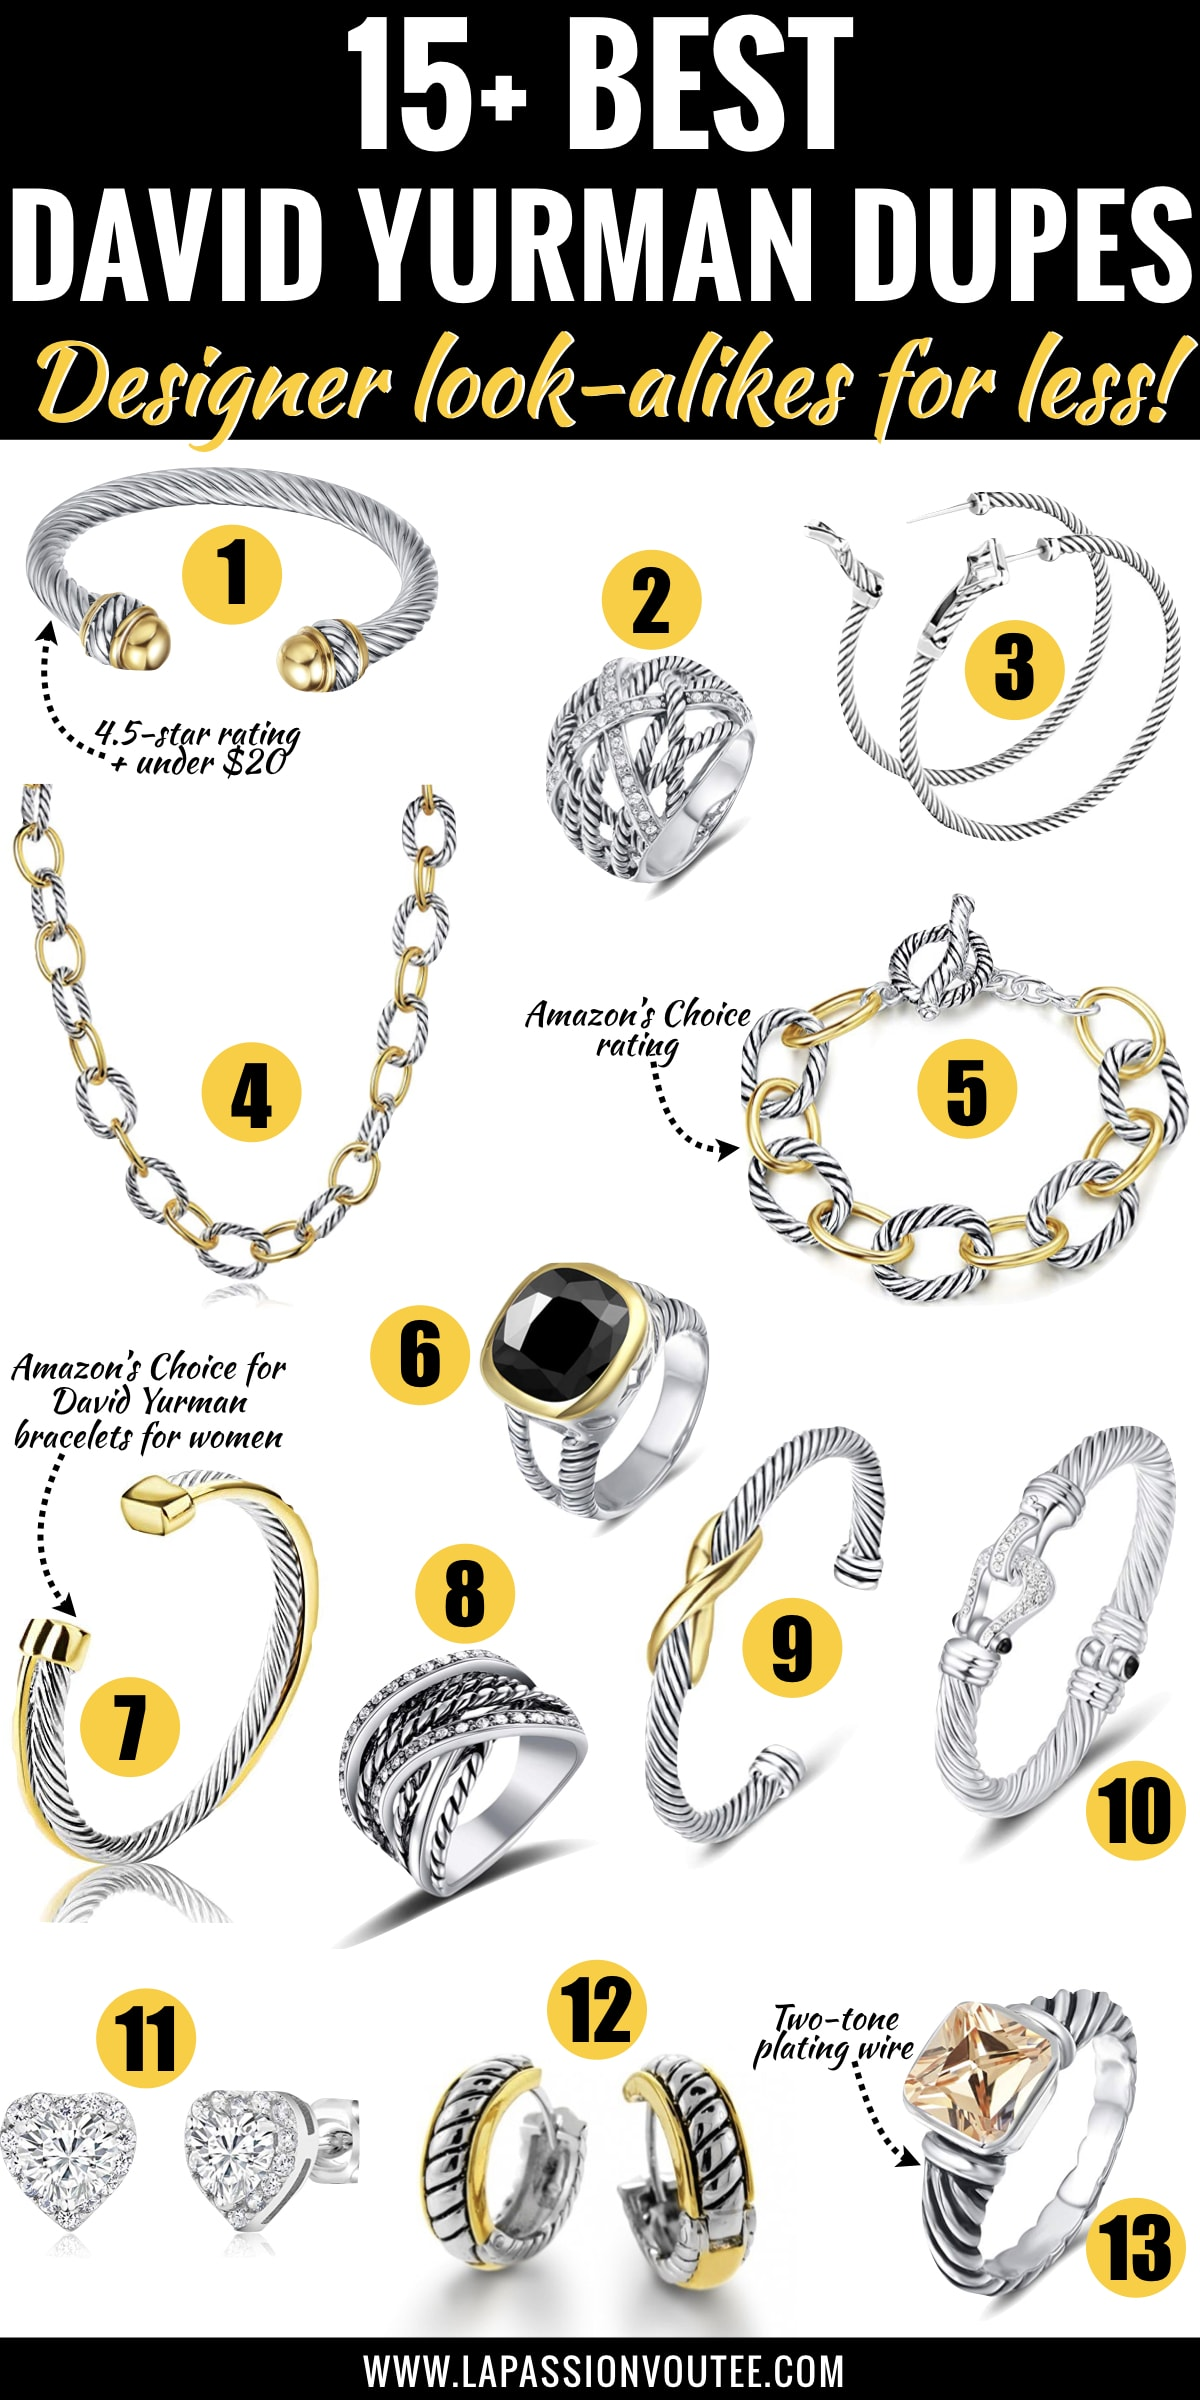 Best-selling David Yurman dupes! This is your ultimate guide to the best look alike David Yurman jewelry. It features a roundup of the best designer inspired cable bracelets that look like real David Yurman bracelets without the expensive price tag. These designer dupes are amazing alternatives that won't break the bank. Get the scoop!